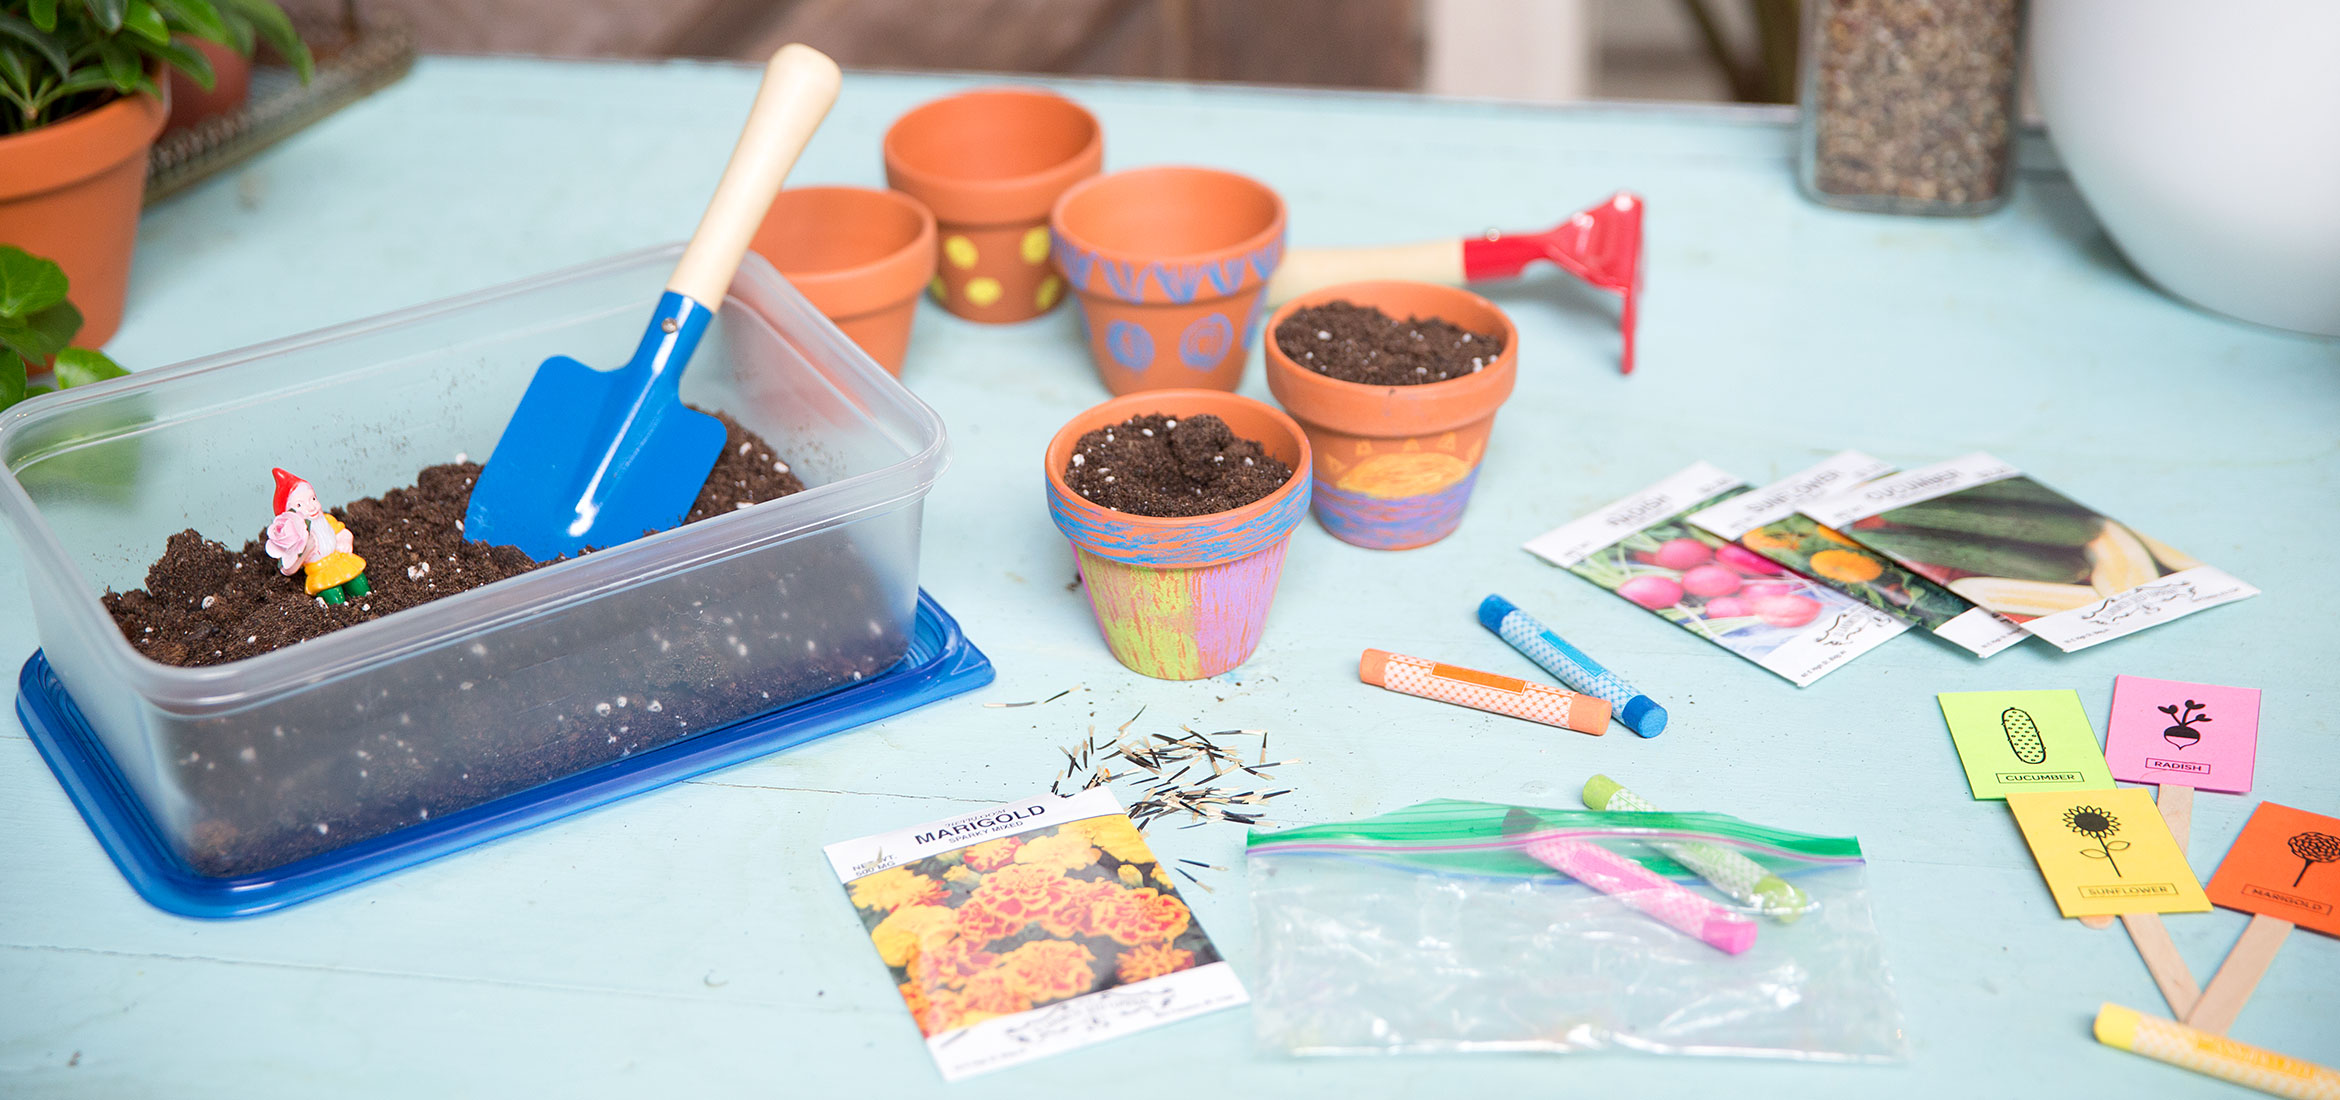 Garden Kit for Outdoor Playdates